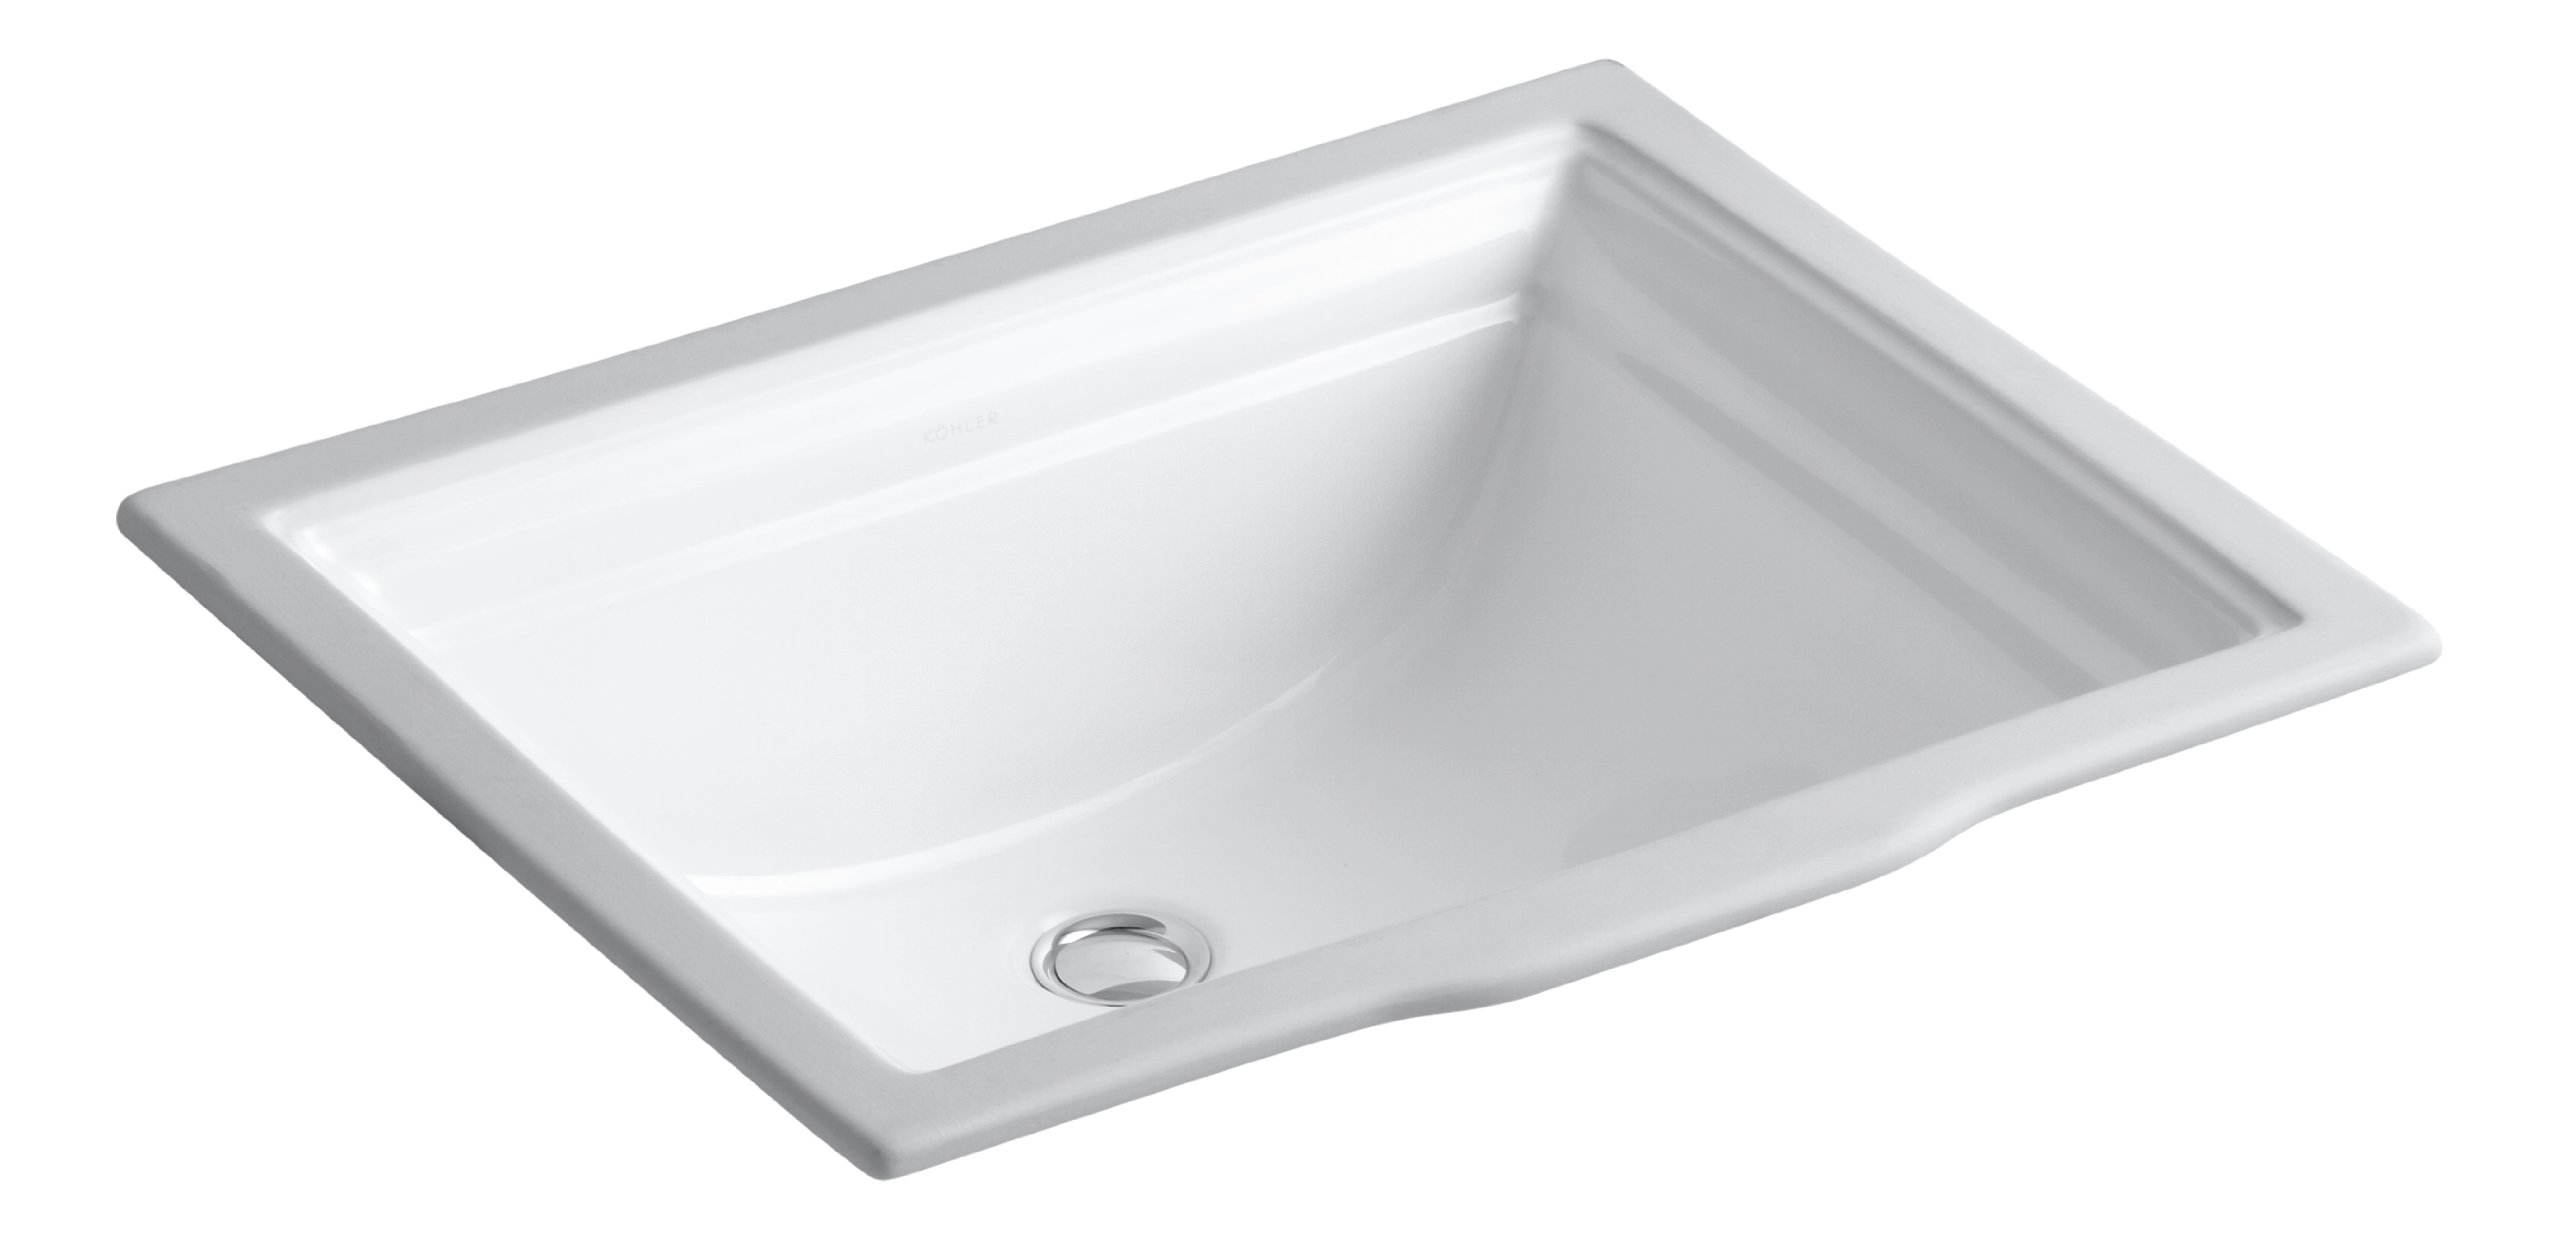 KOHLER K-2339-0 Memoirs Undercounter Bathroom Sink, White by Kohler